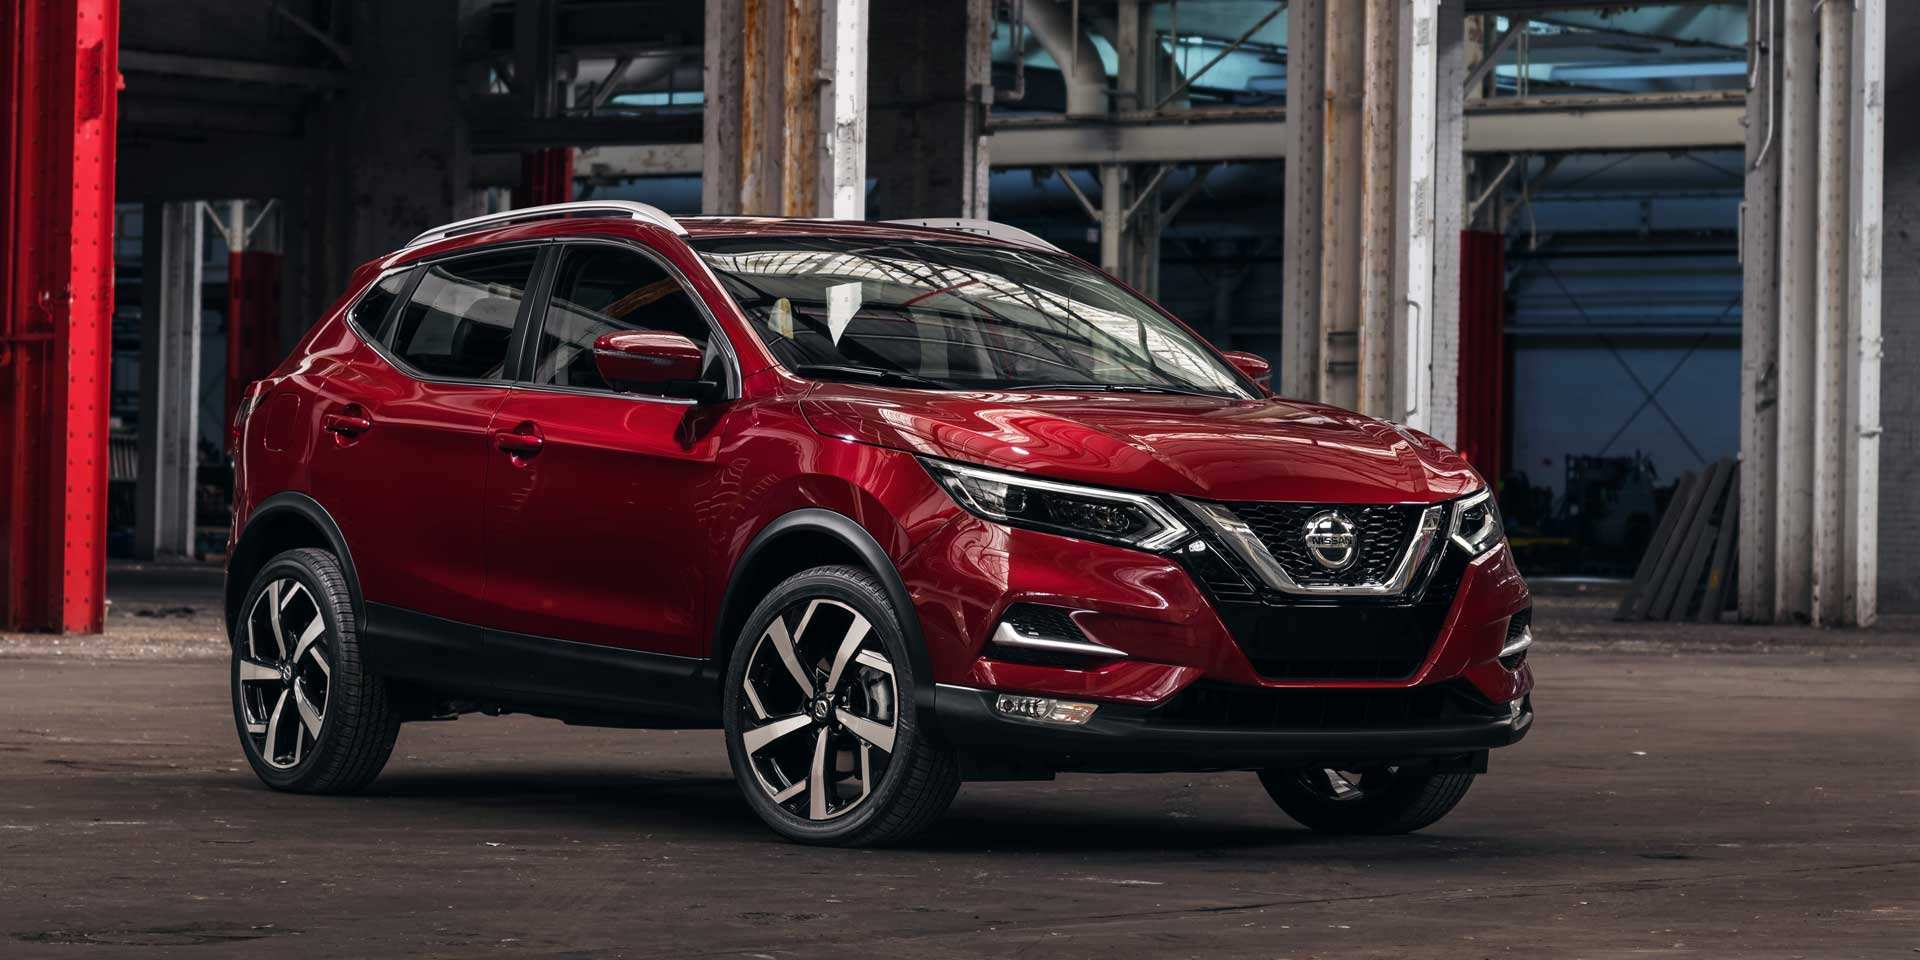 74 Best Review 2020 Nissan Rogue Sport Wallpaper with 2020 Nissan Rogue Sport